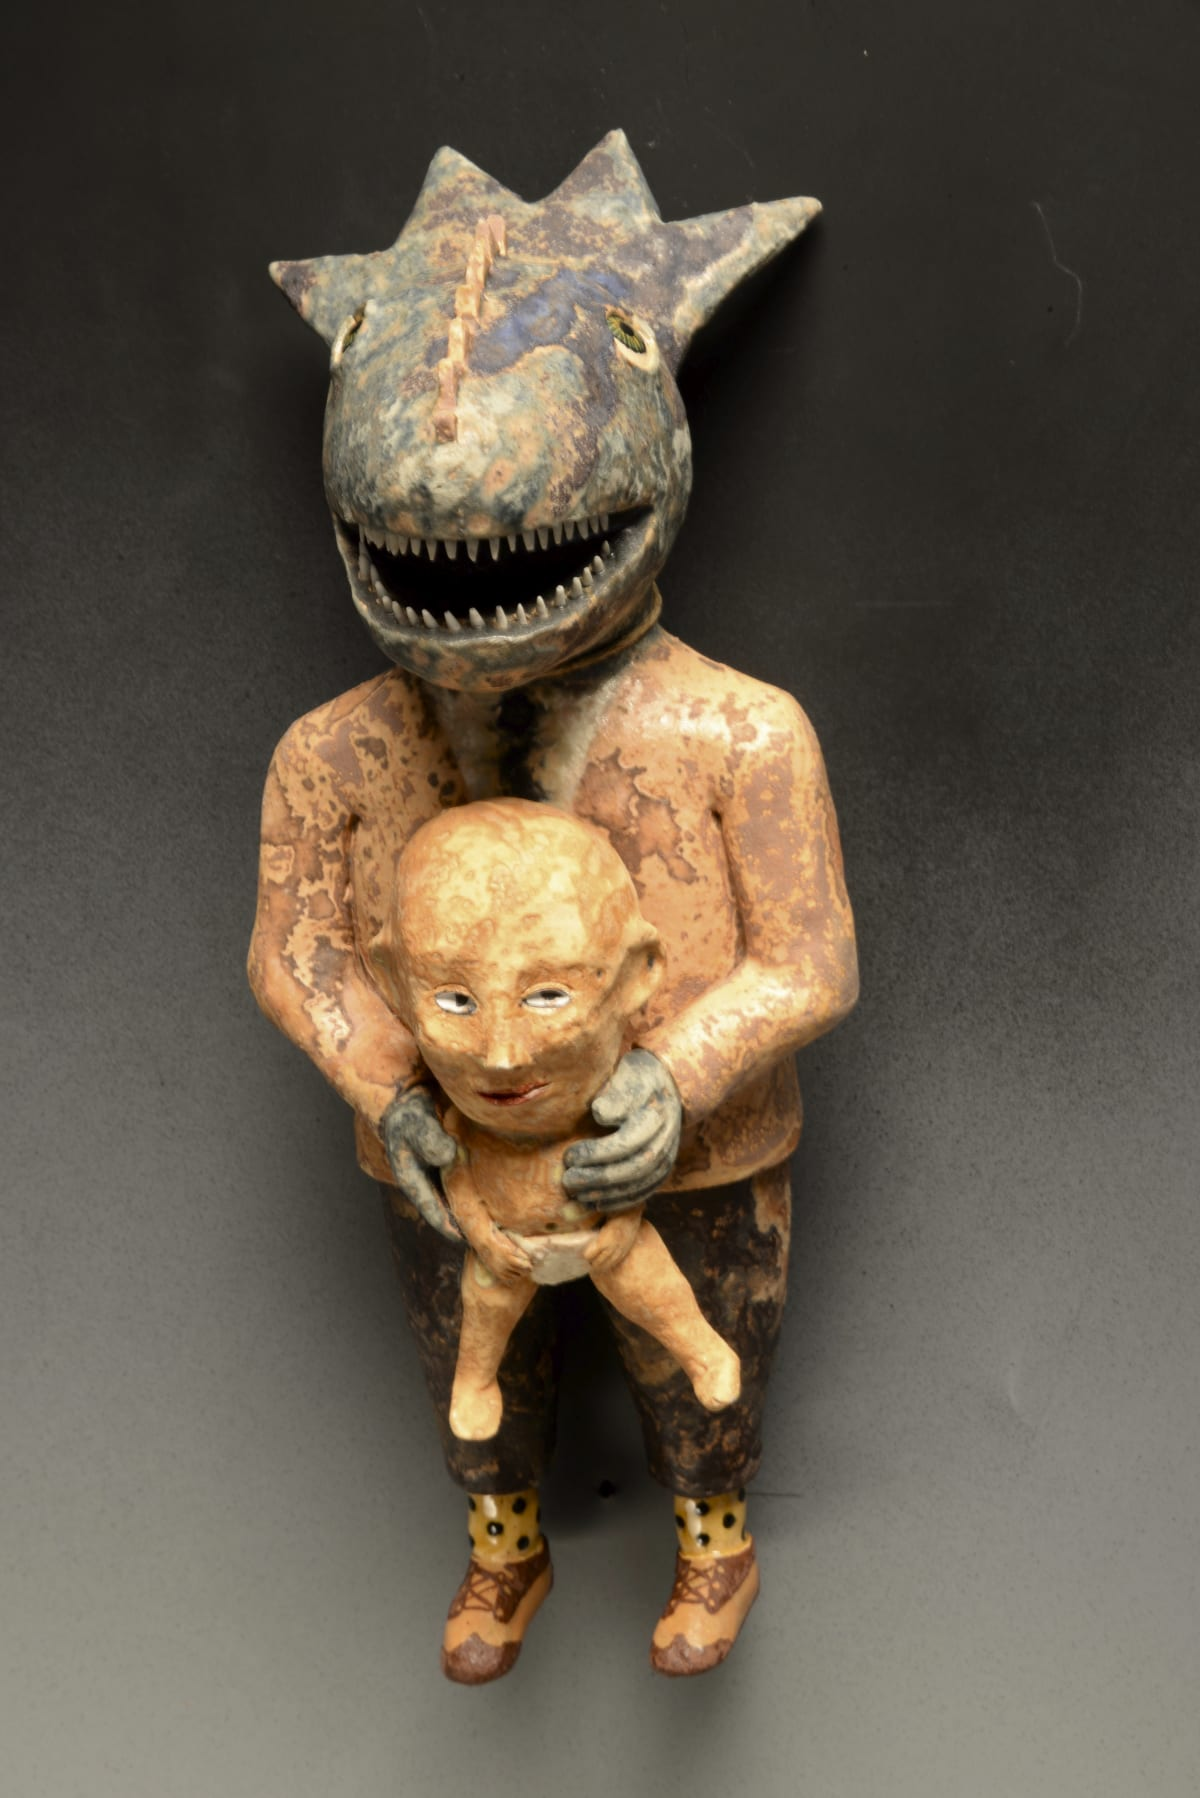 Wesley Anderegg, Horney Toad with Baby, 2020